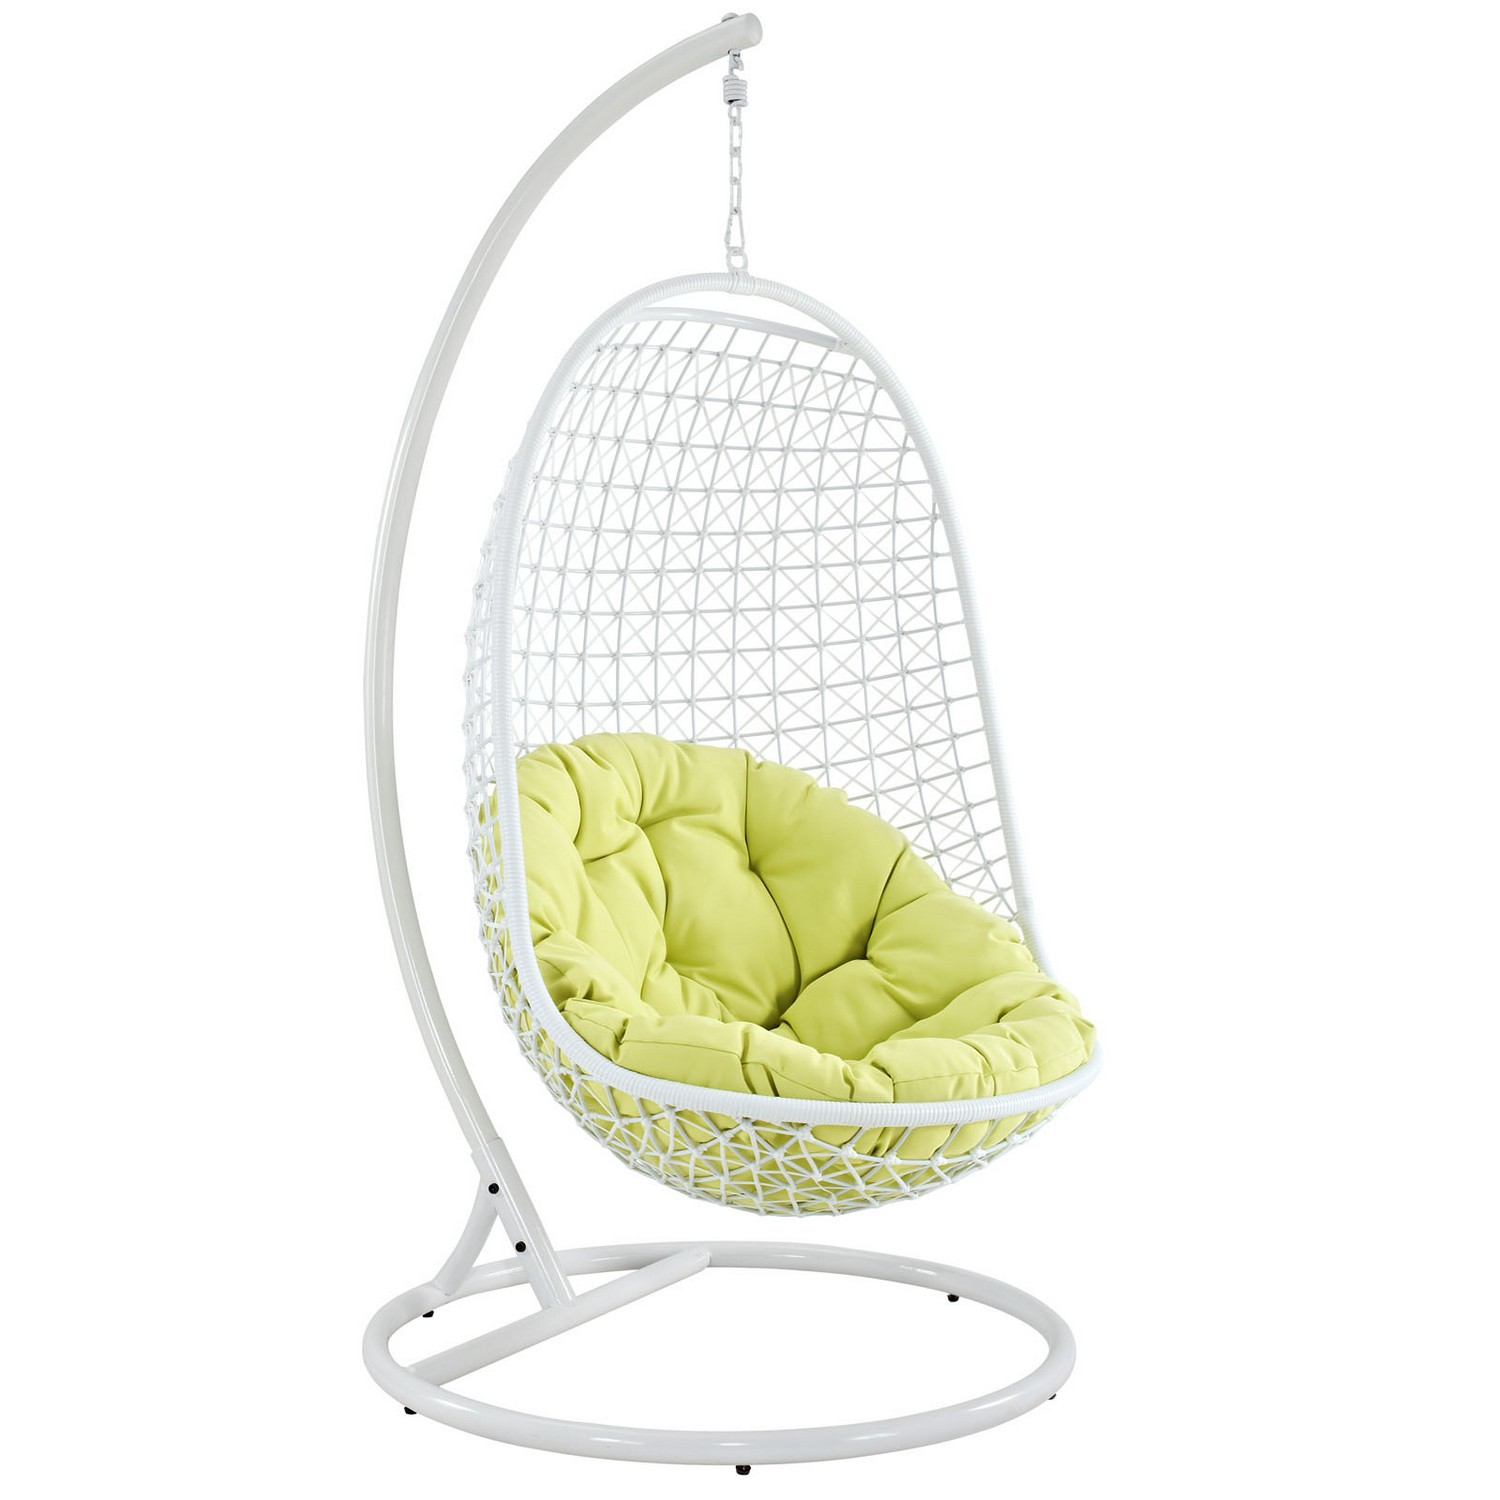 Modway Encounter Swing Outdoor Patio Lounge Chair - White